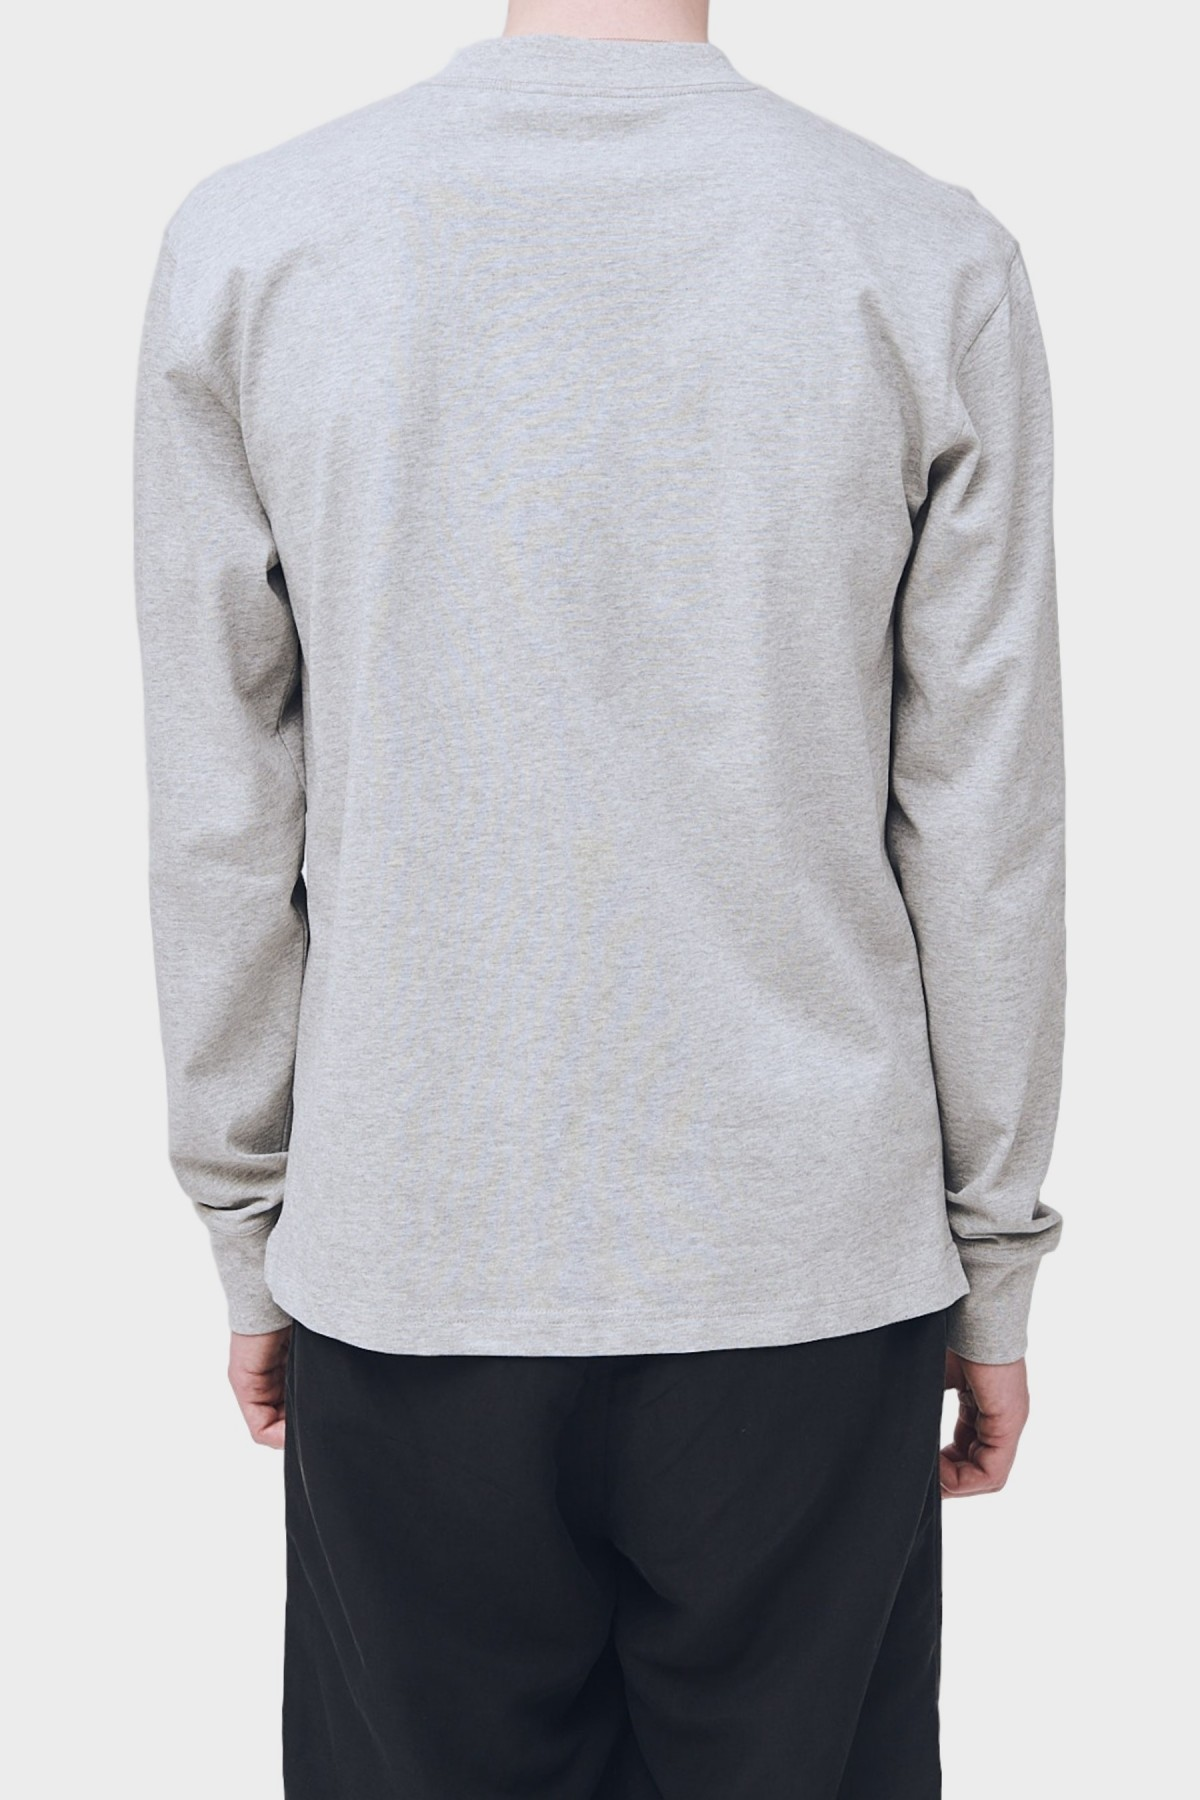 Soulland Cory Long Sleeve T-Shirt in Grey Melange